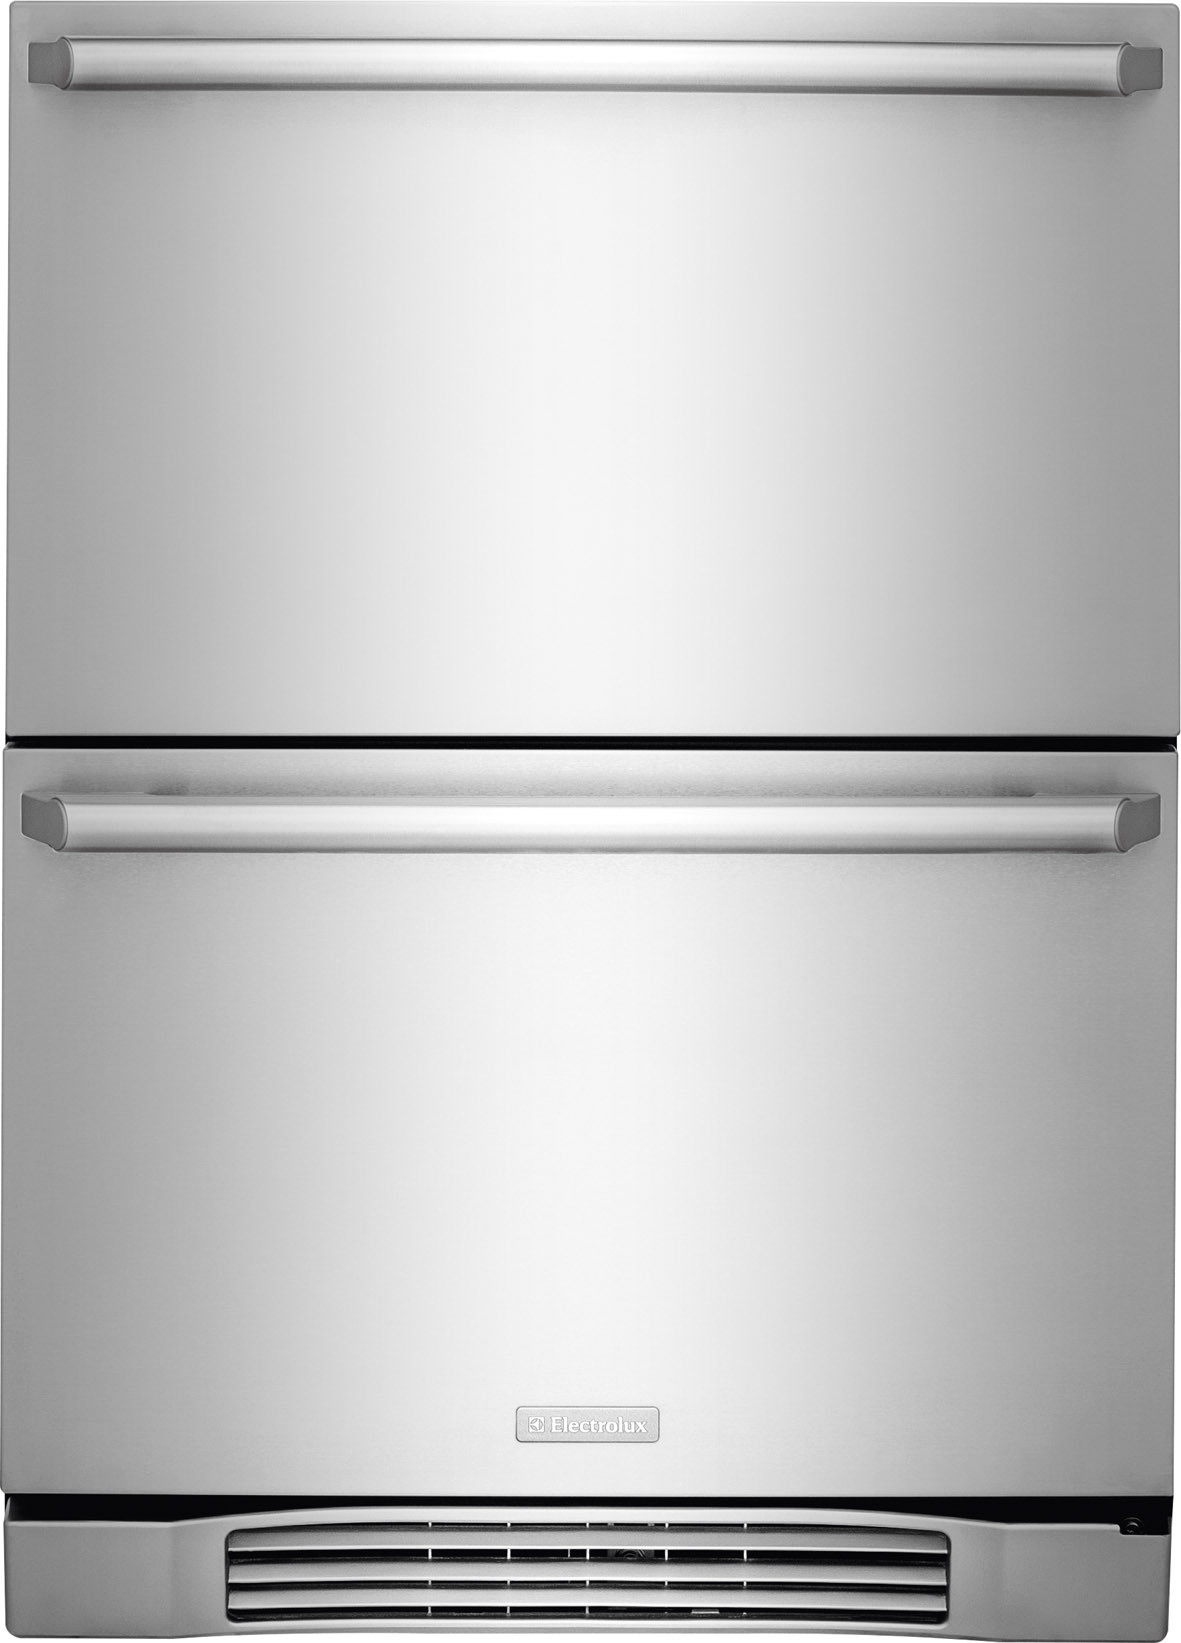 refrigerators the com t whirlpool content that but move much reviewed refrigerator you s interior alright can single drawer shelves review